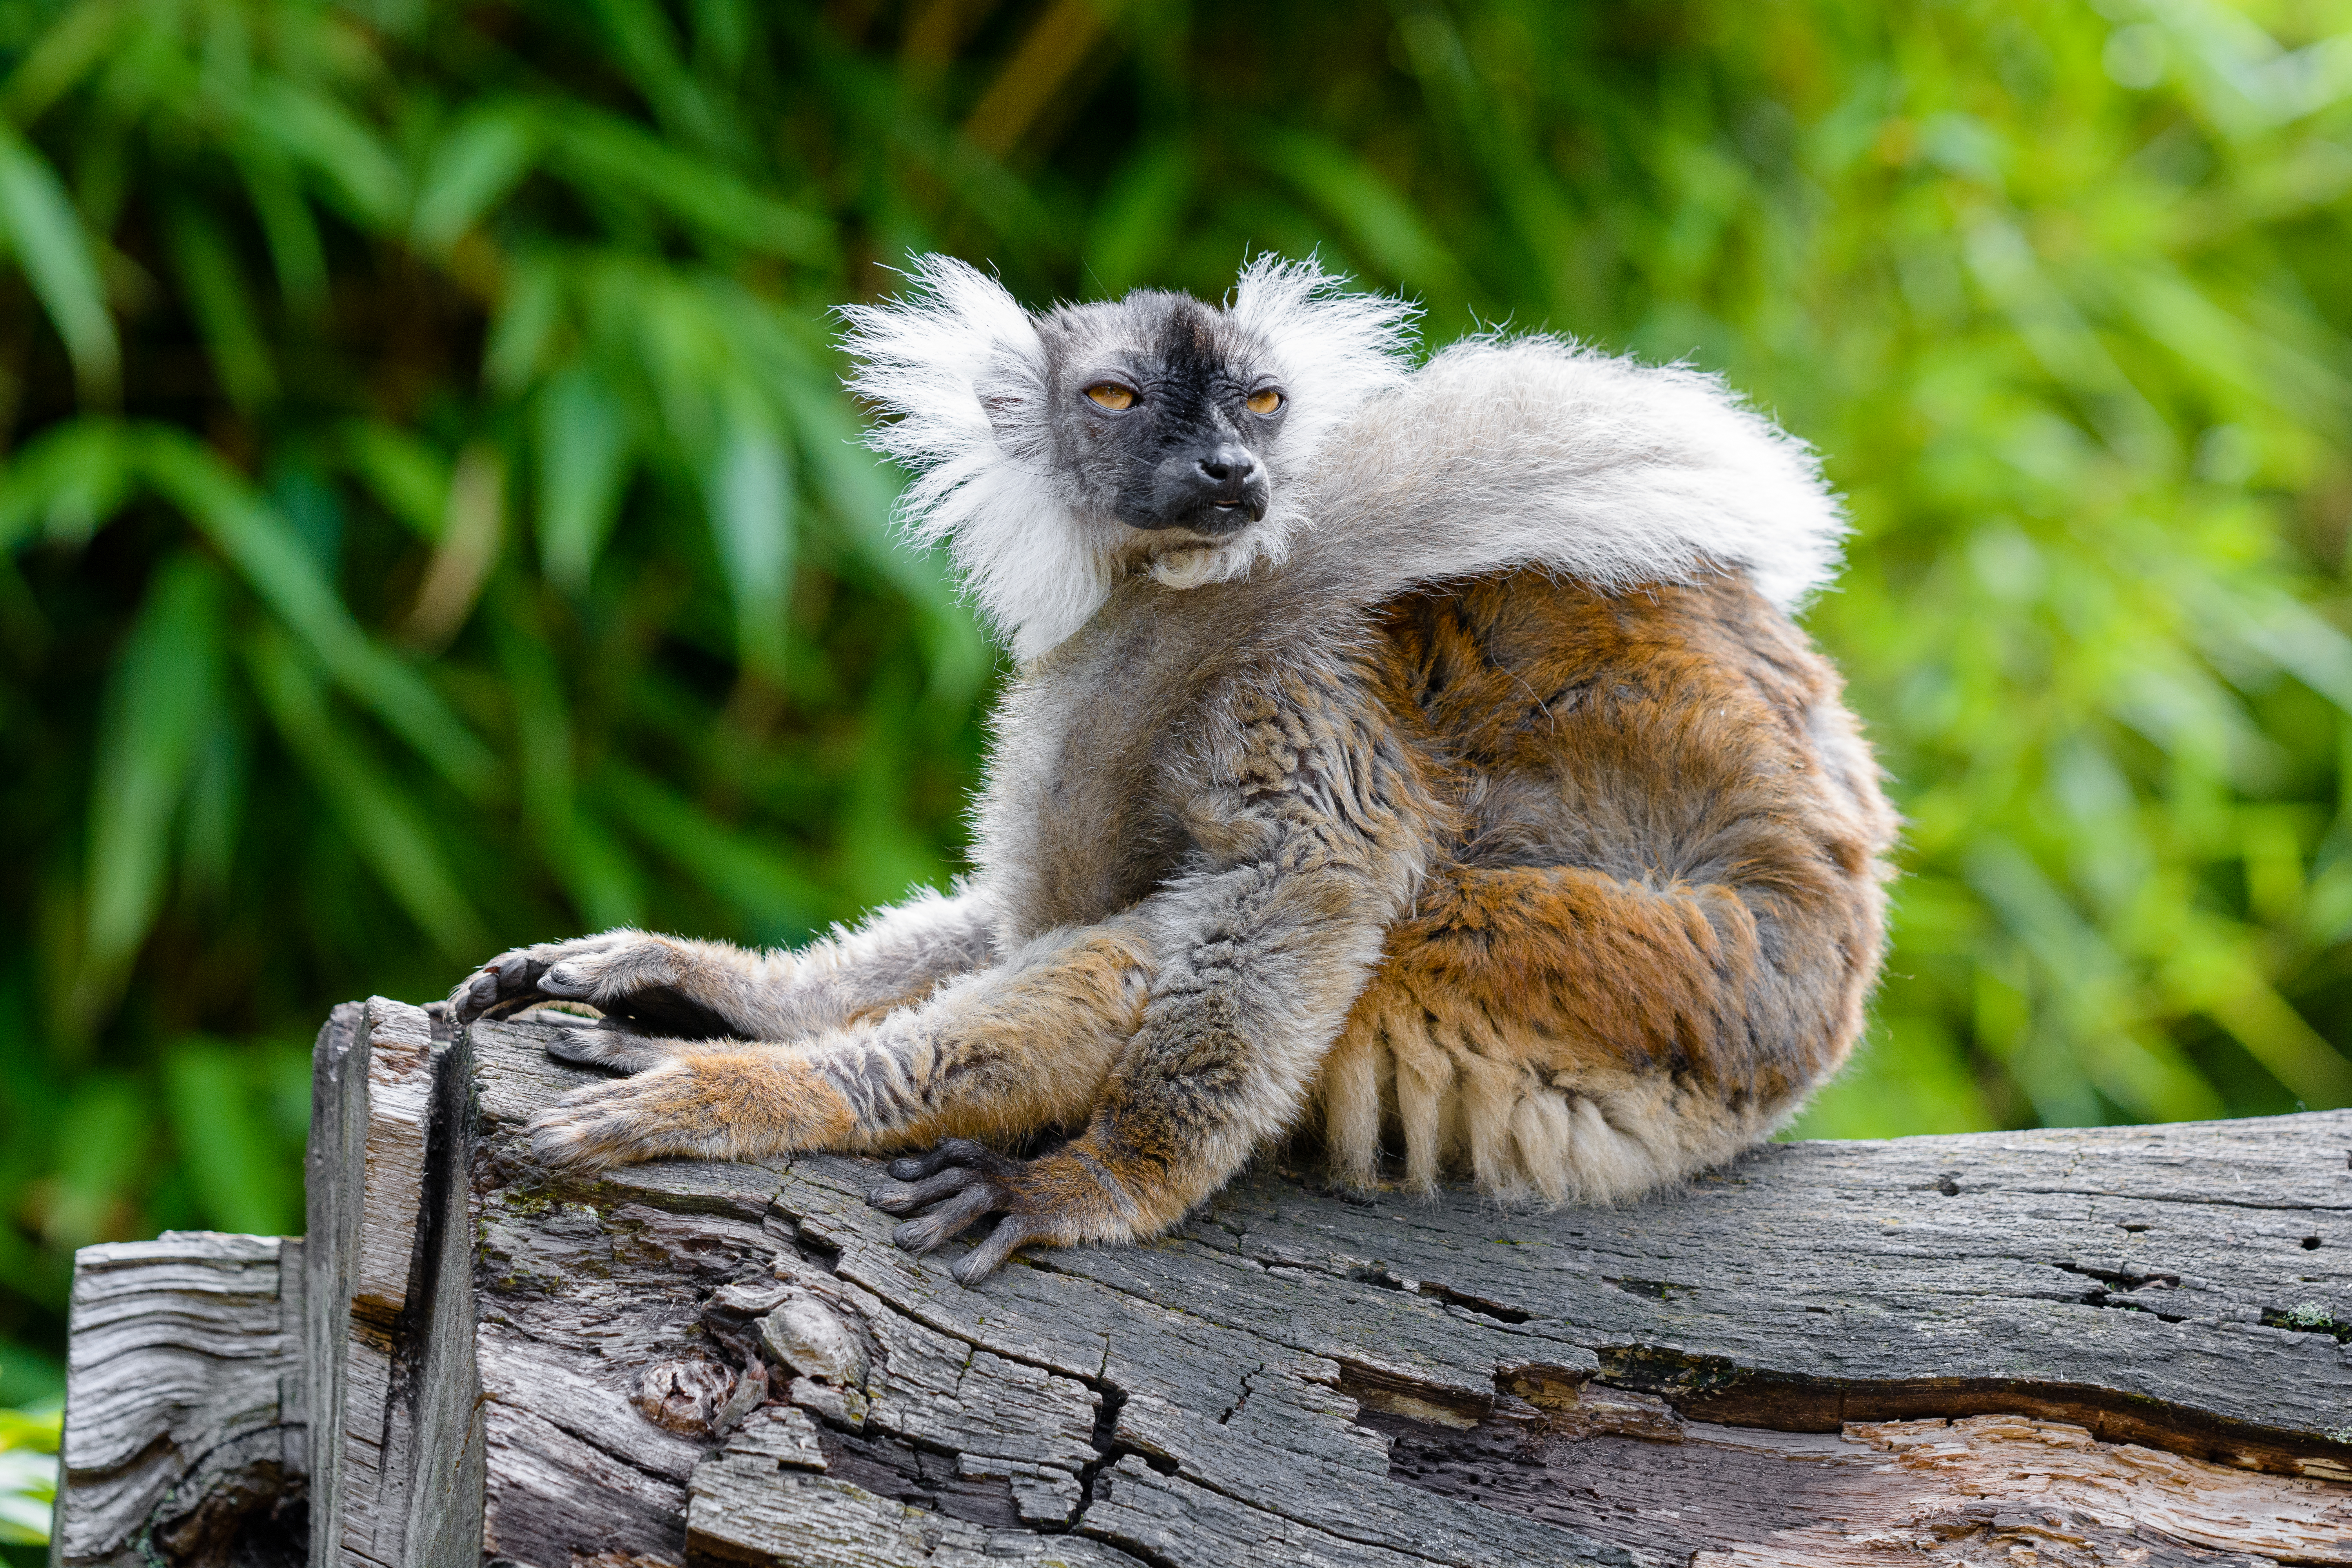 92370 download wallpaper Animals, Lemur, Sight, Opinion, Funny, Animal, Wildlife screensavers and pictures for free